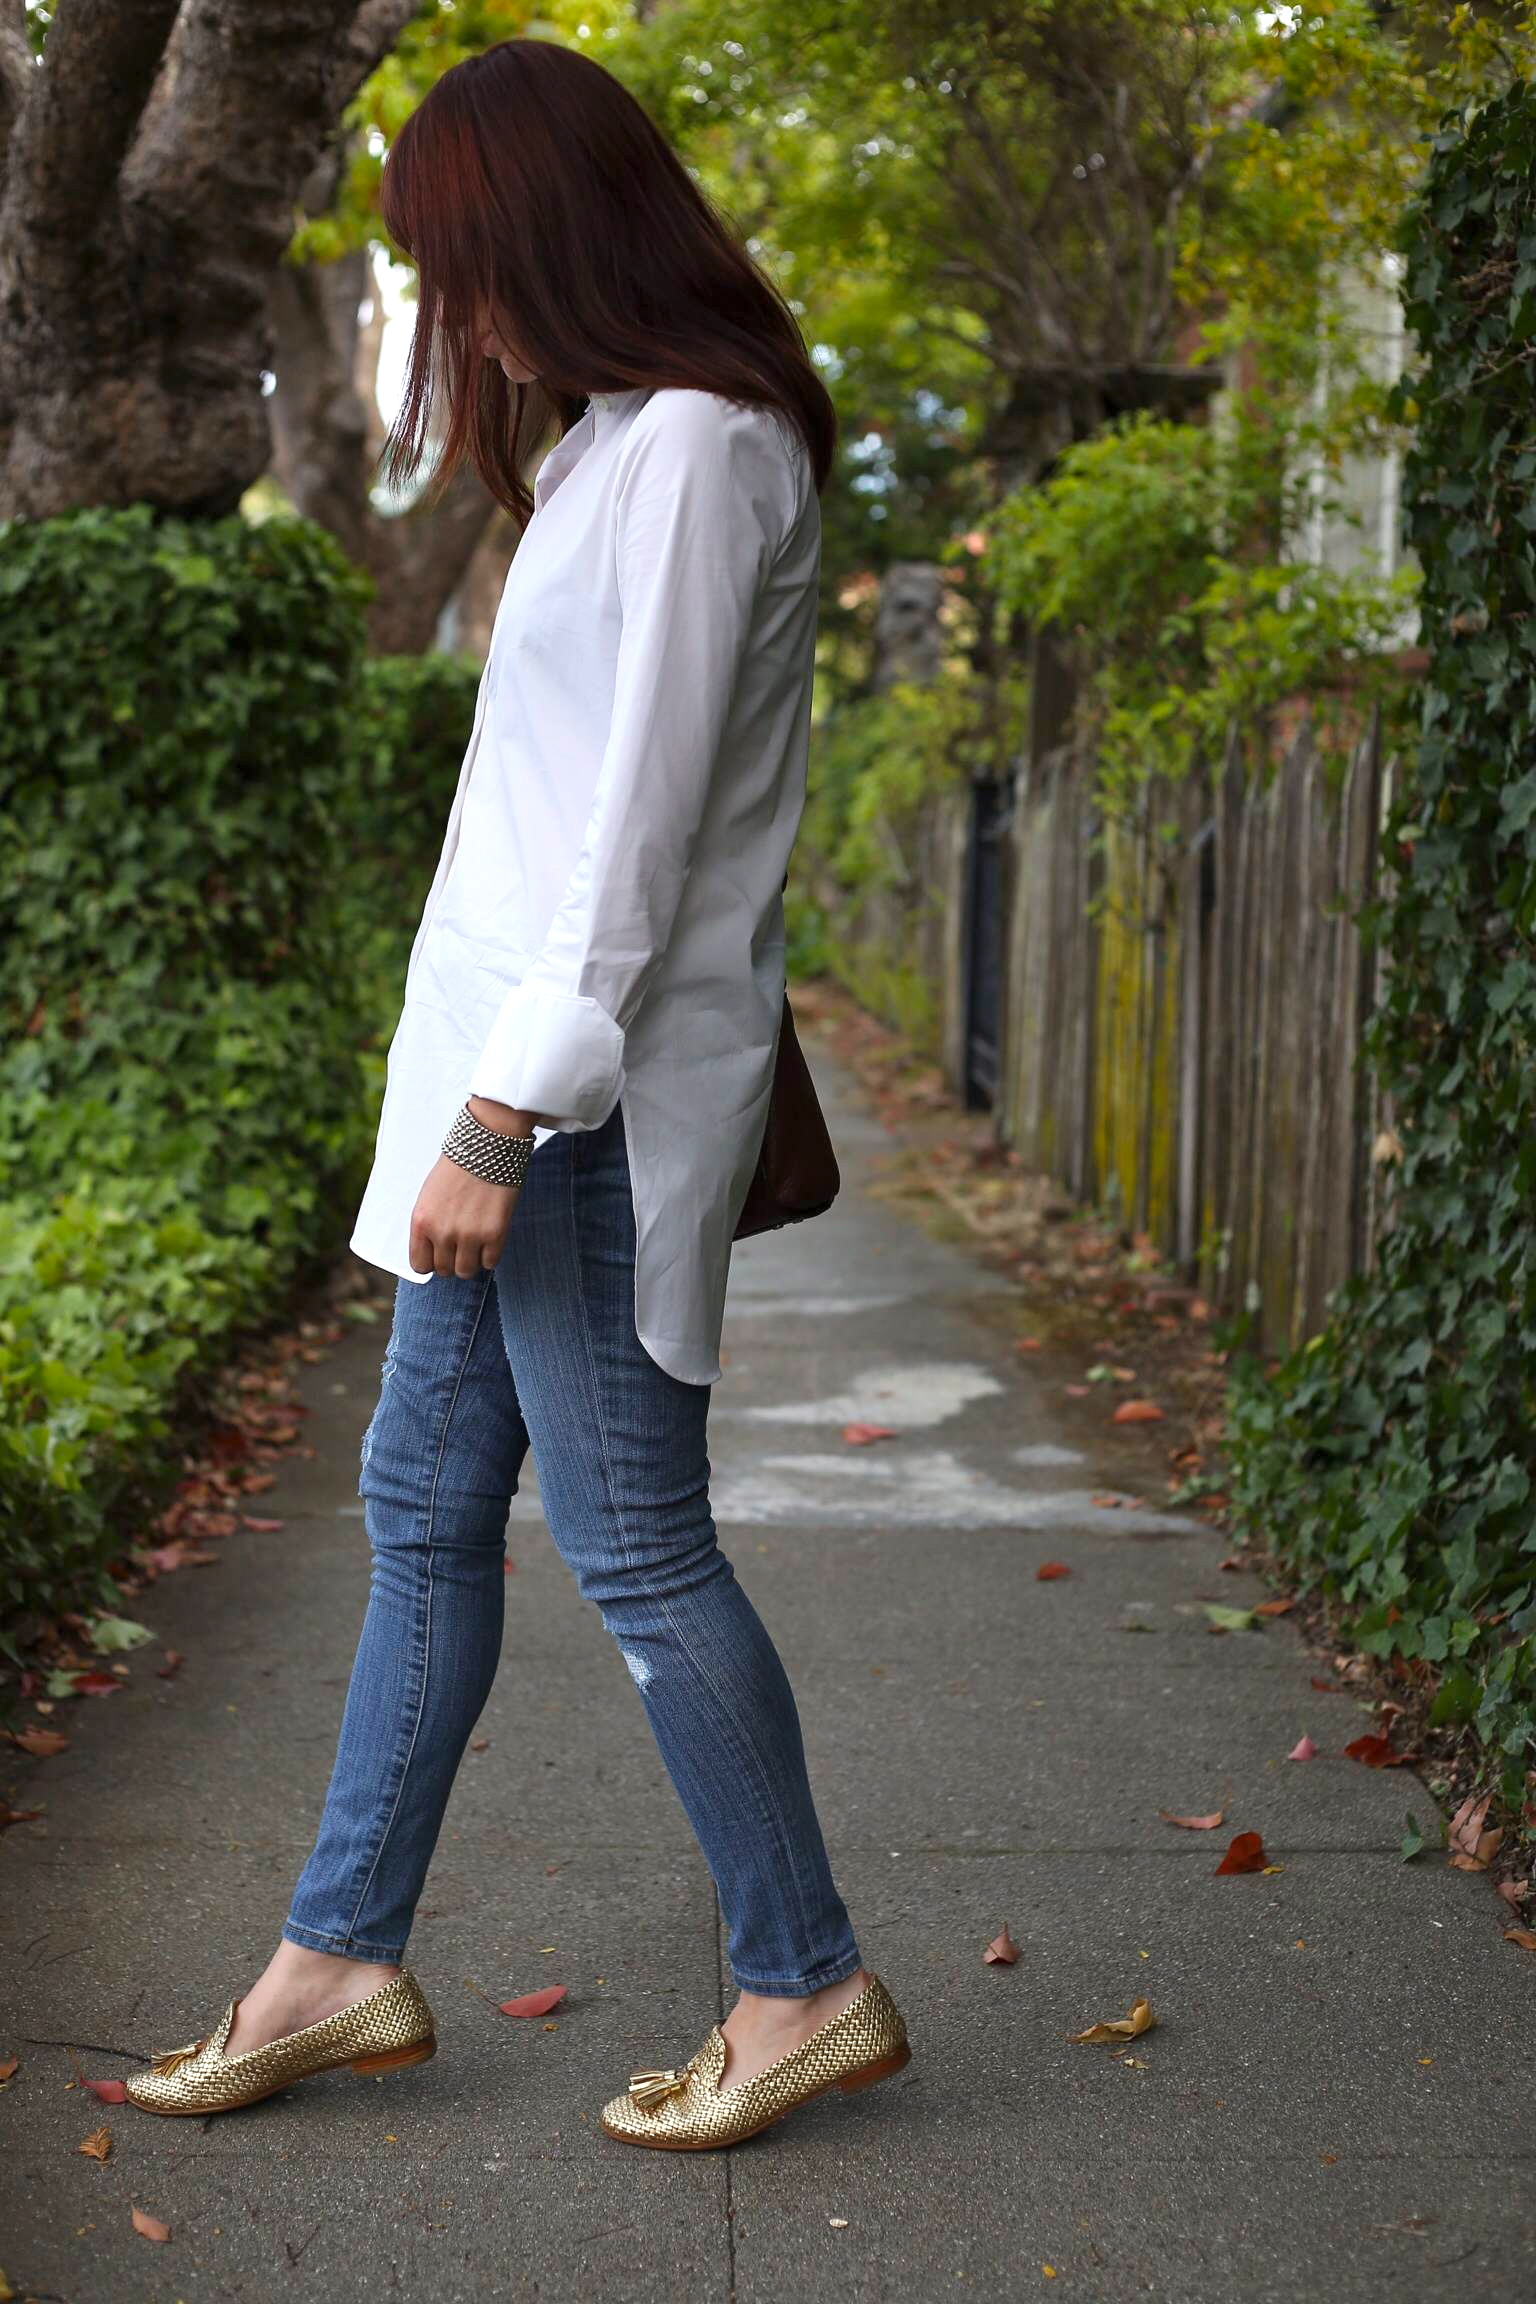 Endless Shirt : J.Crew; Toothpick Jean: J.Crew (Old but others  HERE ); Loafers: Prada; Bracelet:  Liquid Silver ,  Morning Glory ; Bag: Kate Spade; Glasses: Marc by Marc Jacobs